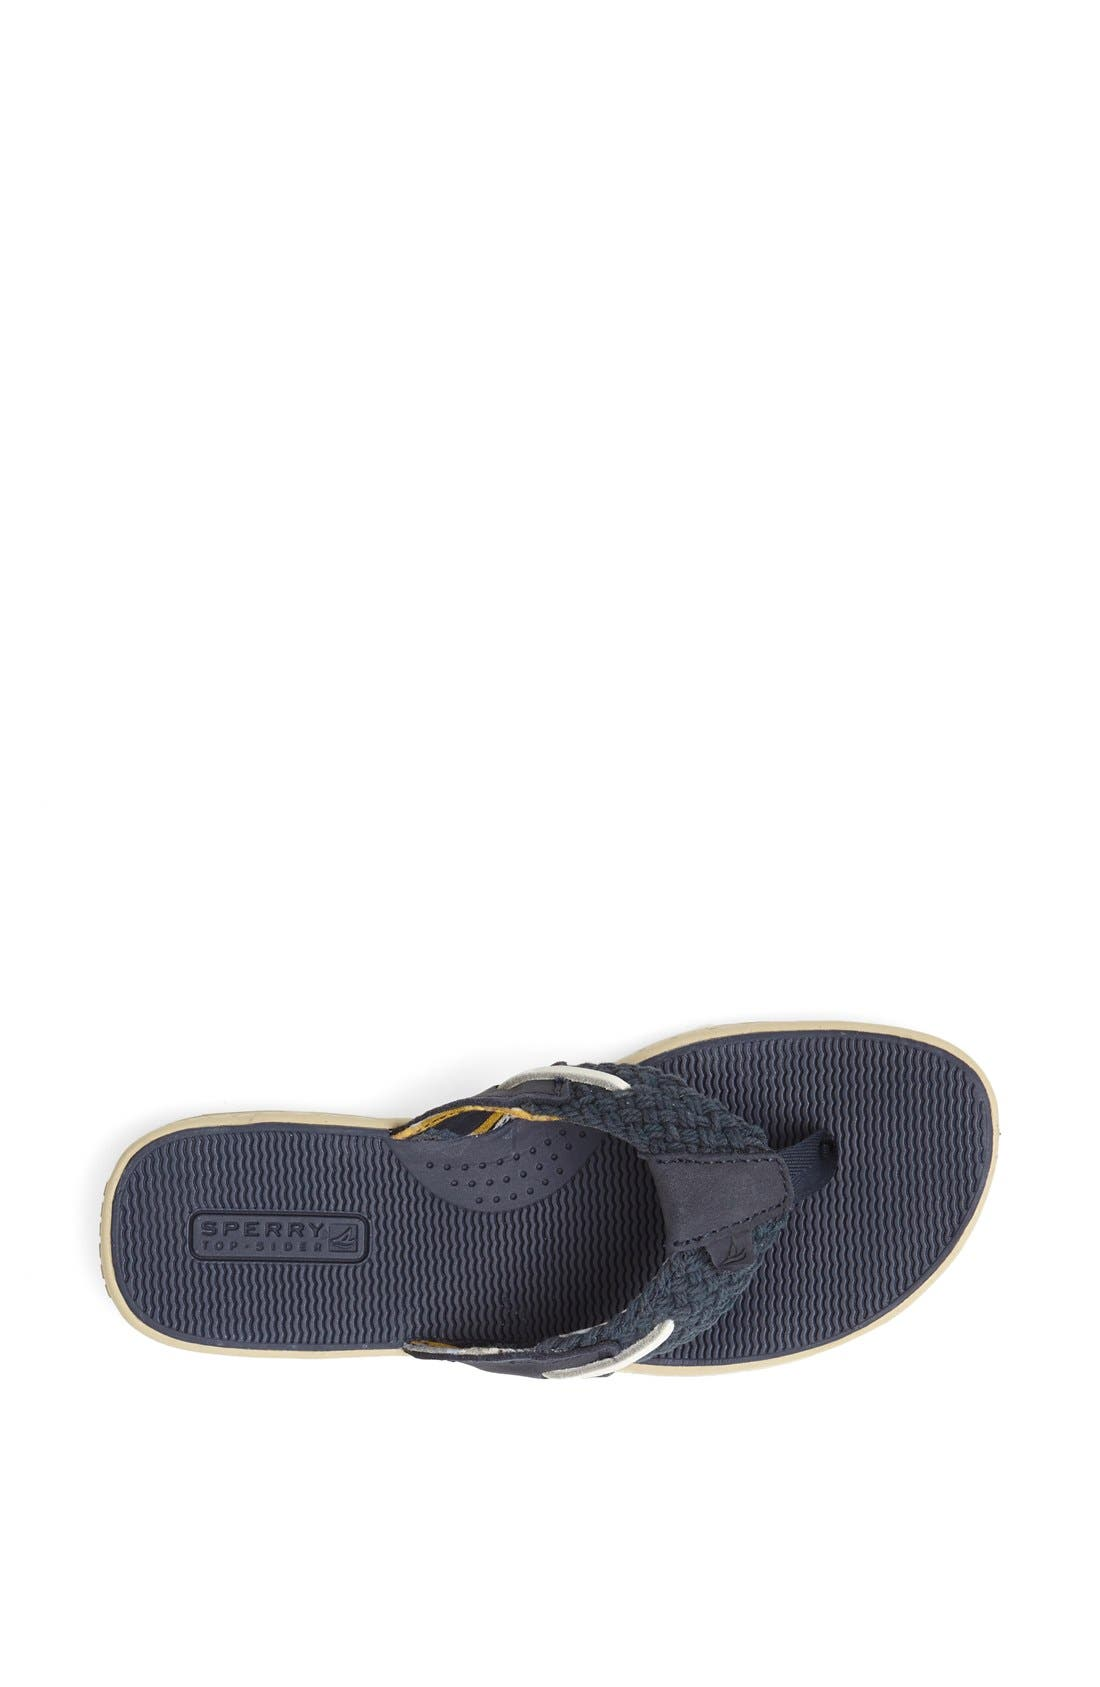 Alternate Image 3  - Sperry Top-Sider® 'Parrotfish' Thong Sandal